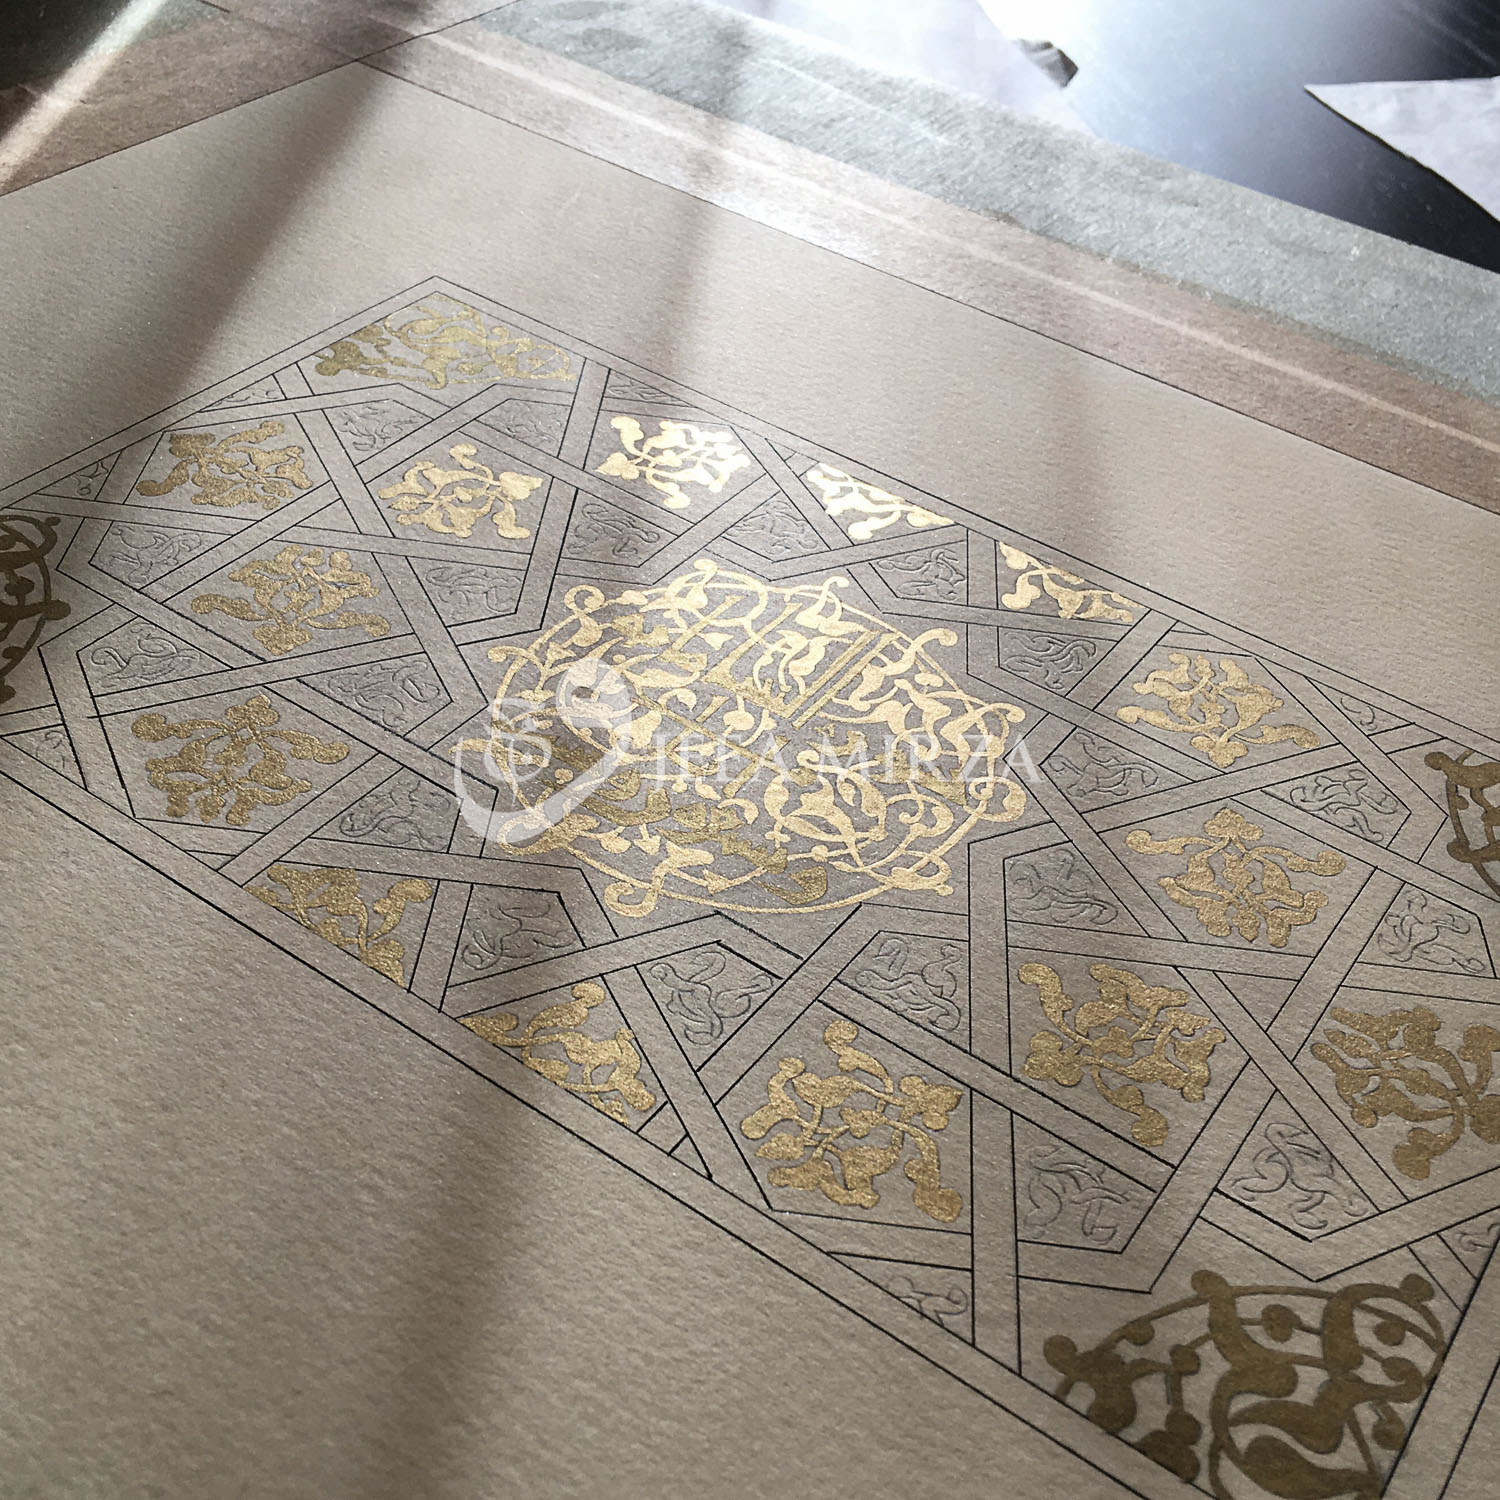 First layers of gold applied